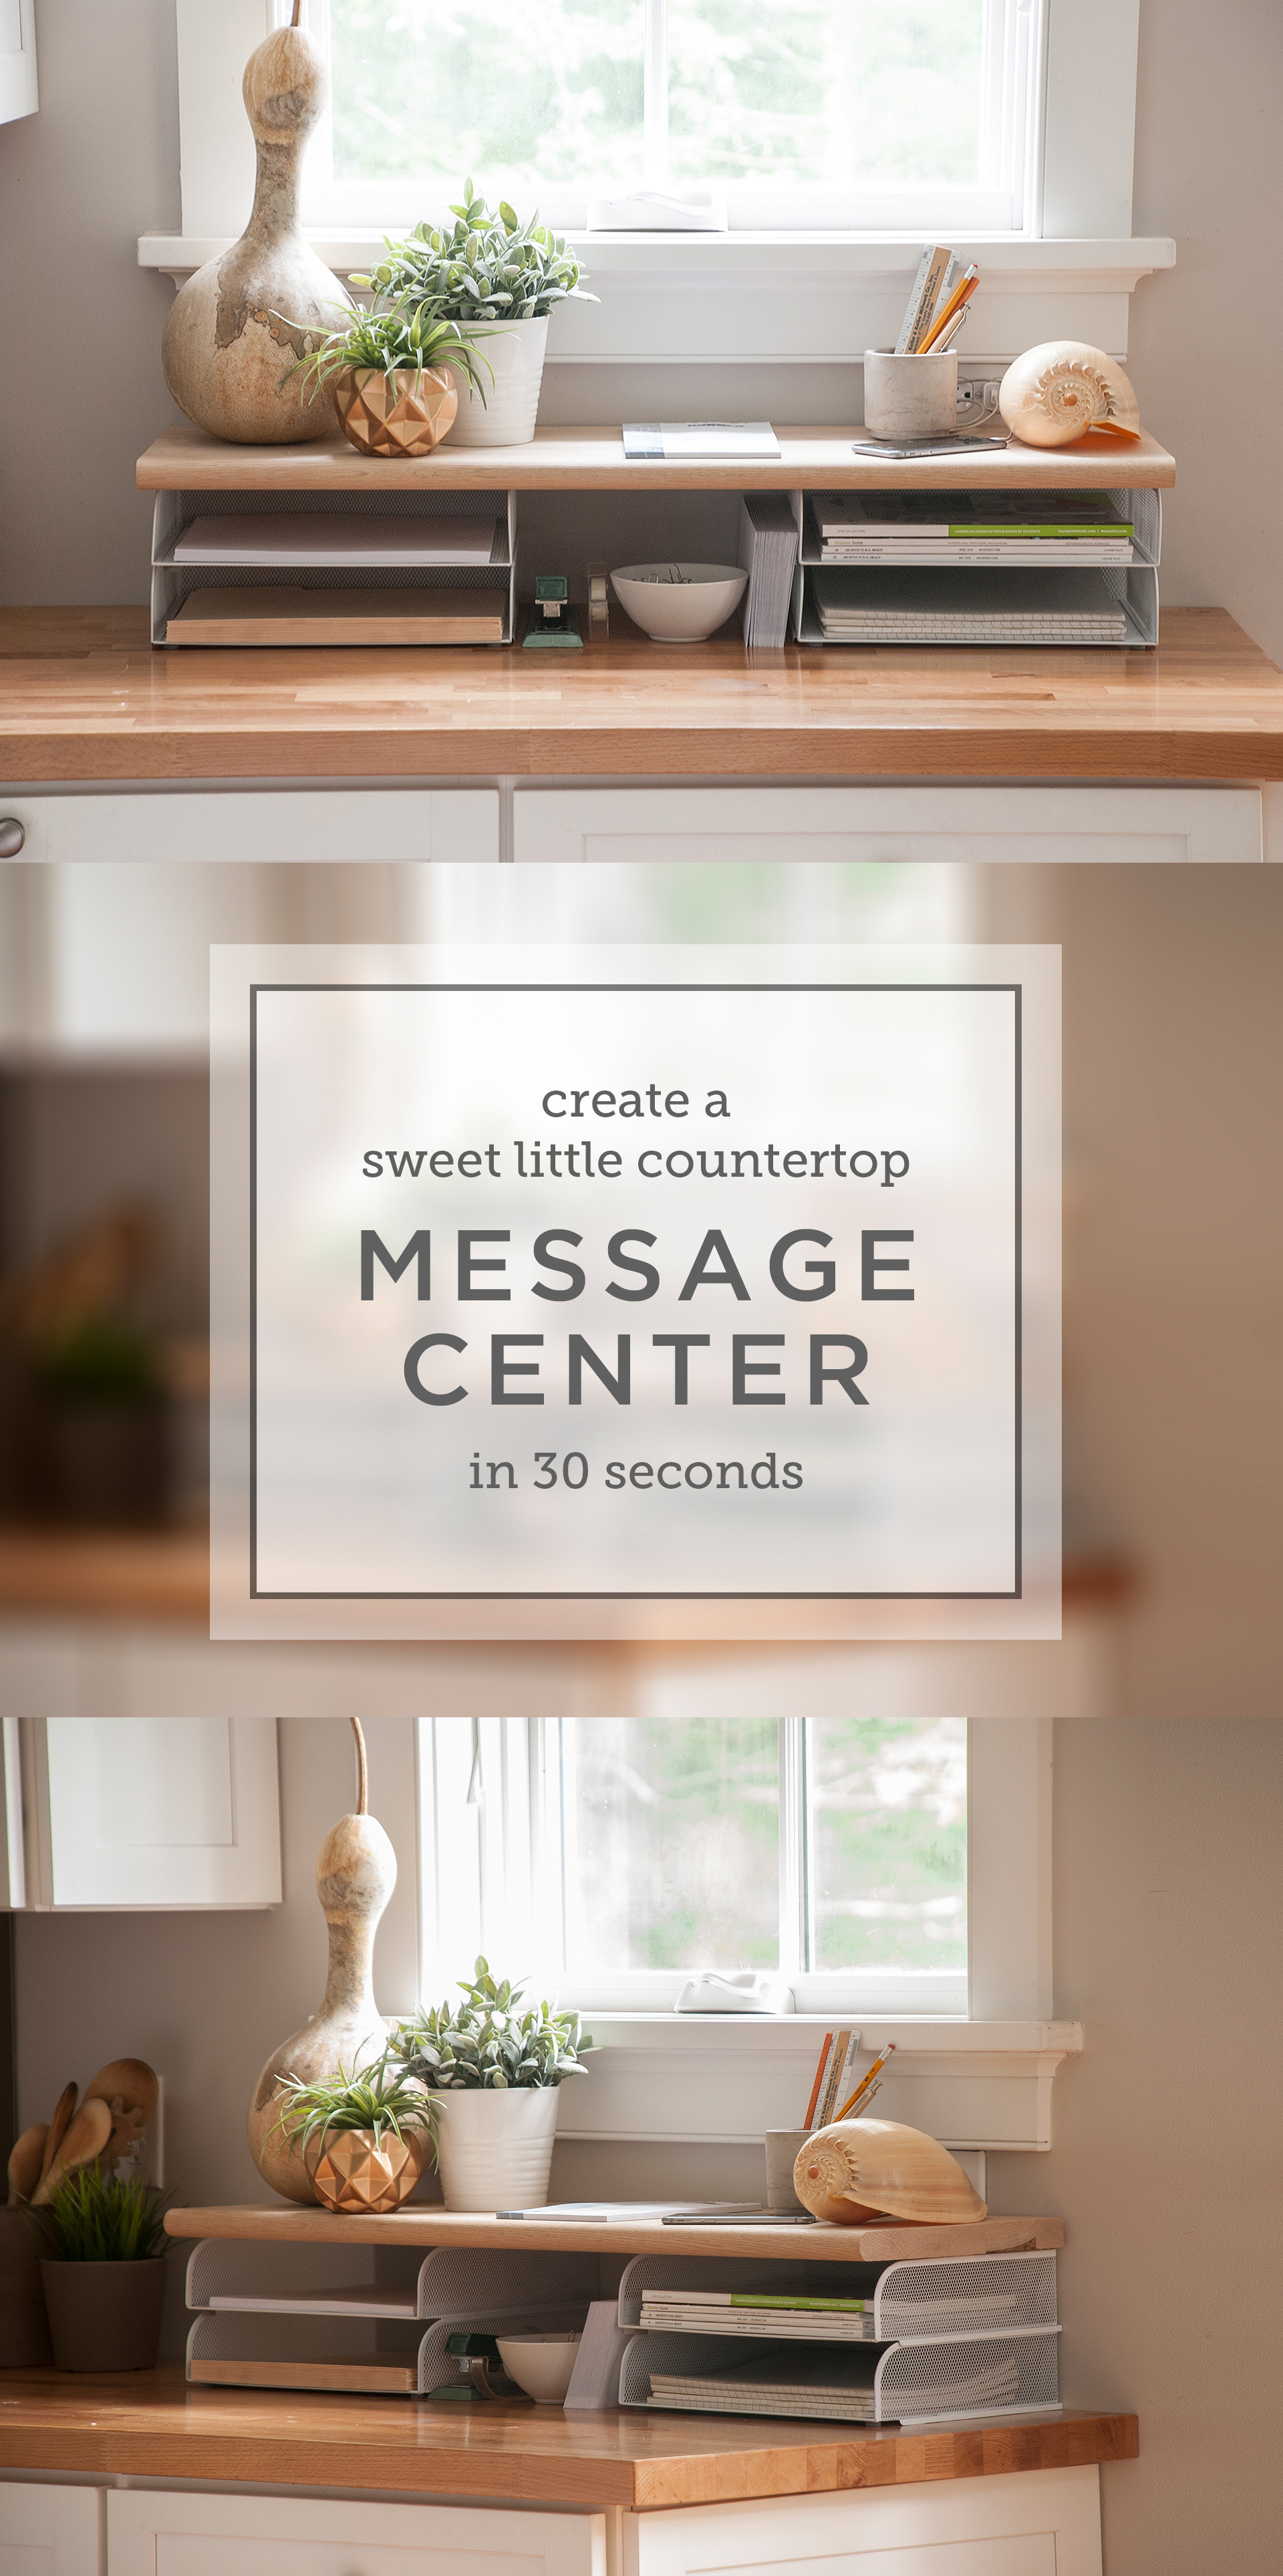 Photos of message center